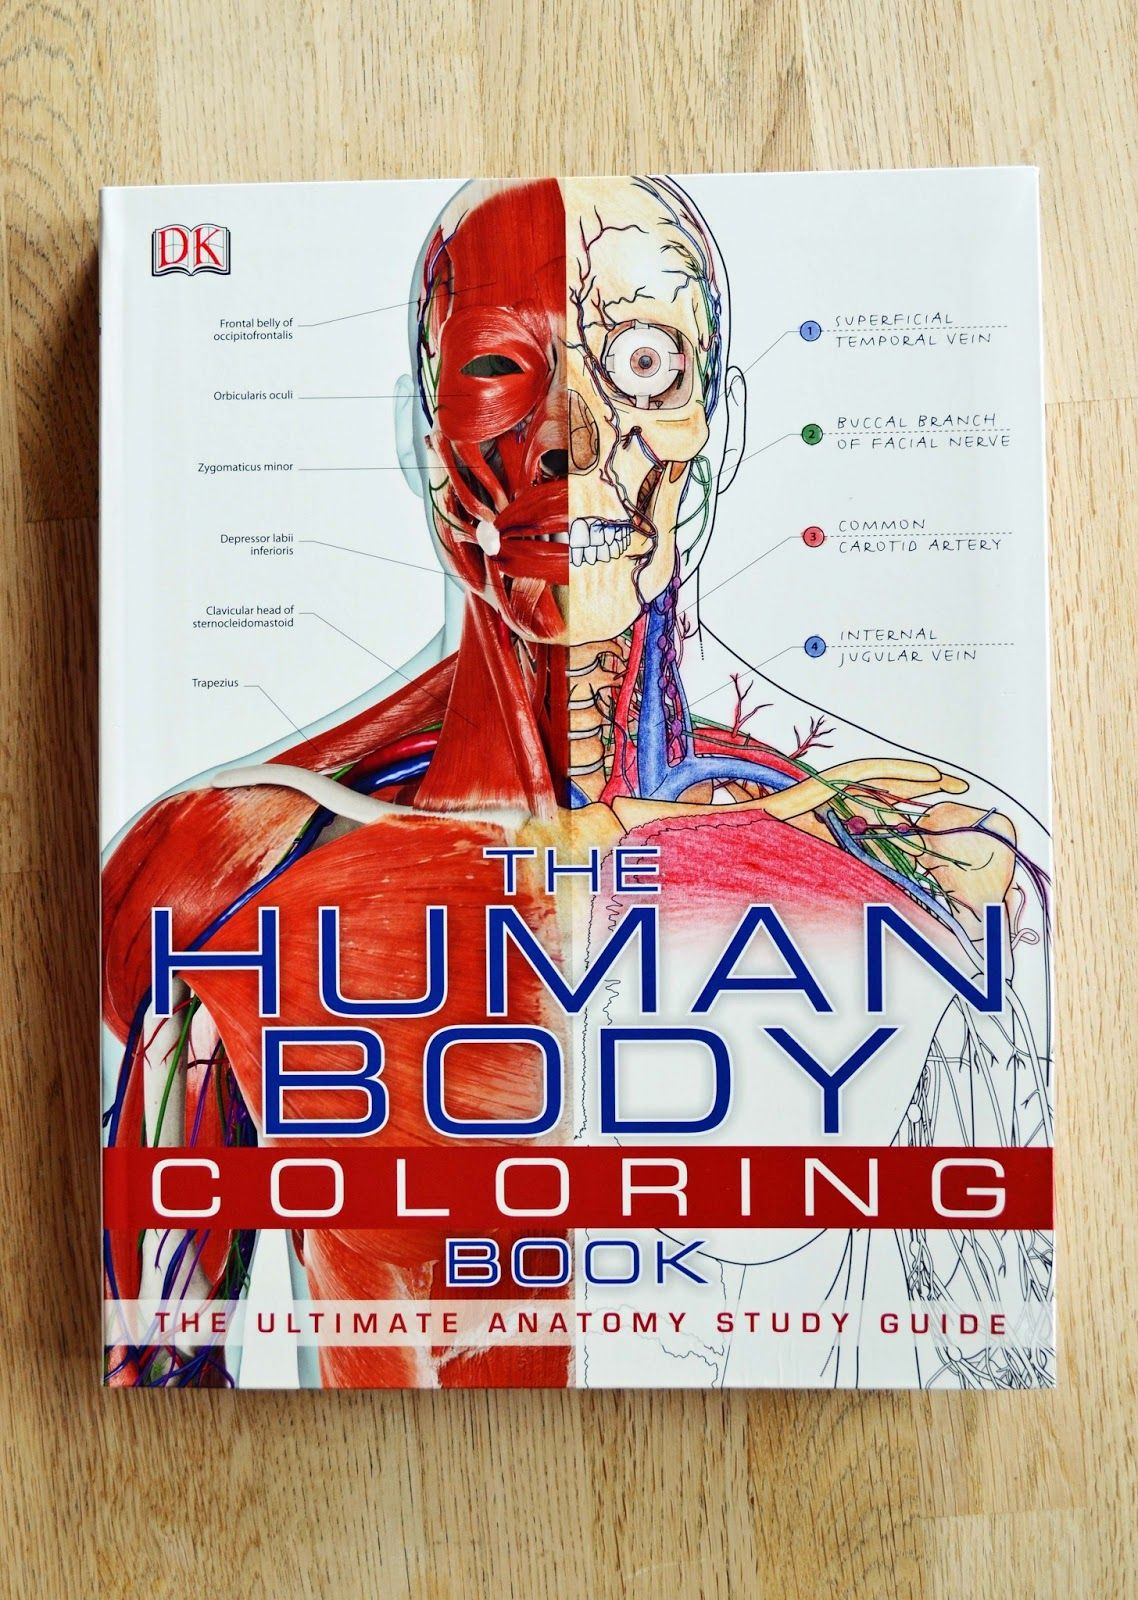 The Human Body Coloring Book | wanna learn something ...